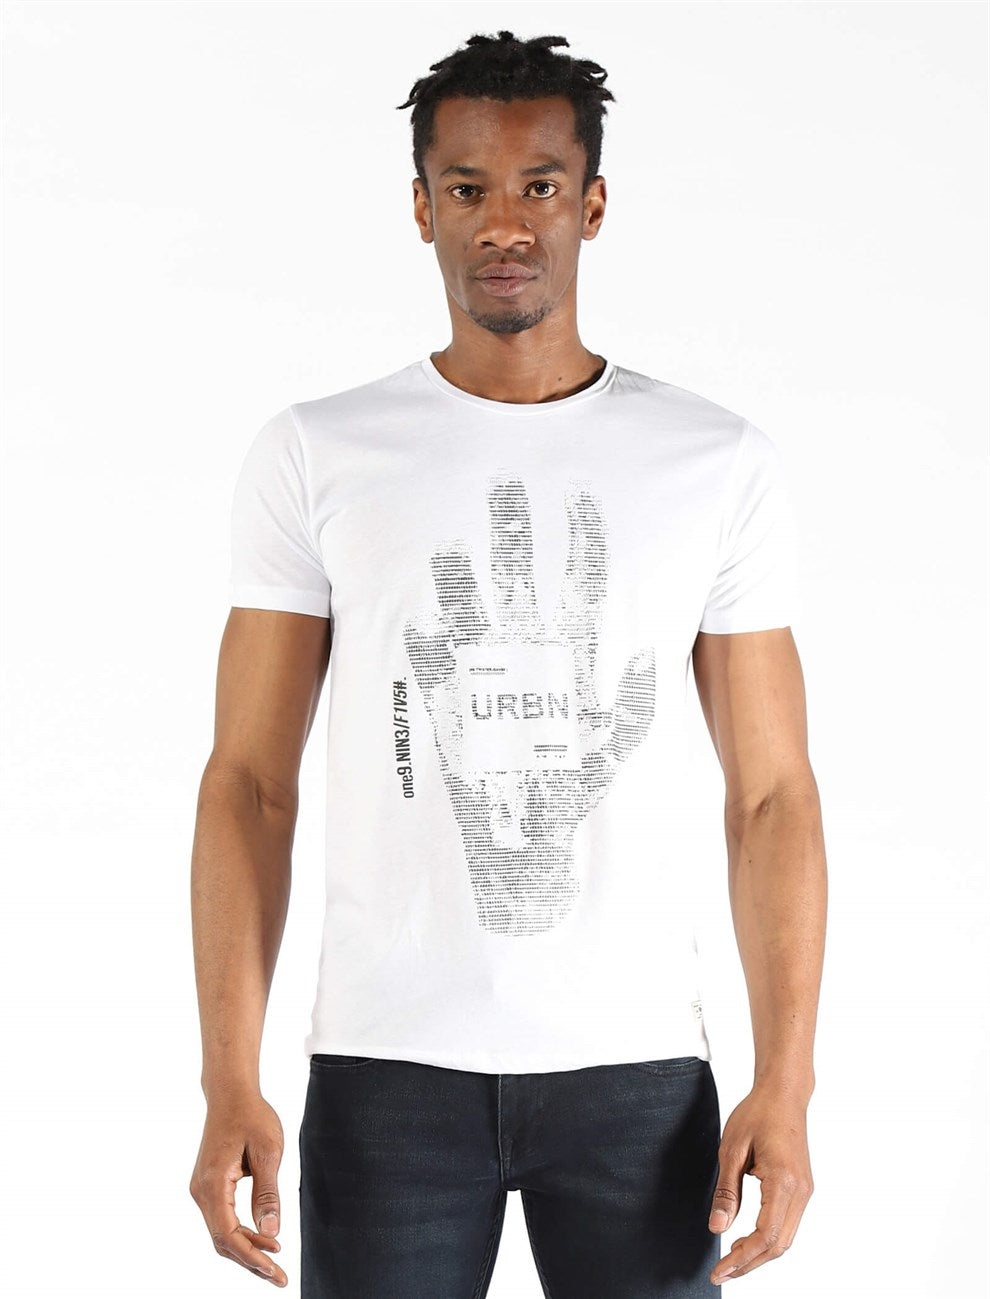 Men's Printed White T-shirt